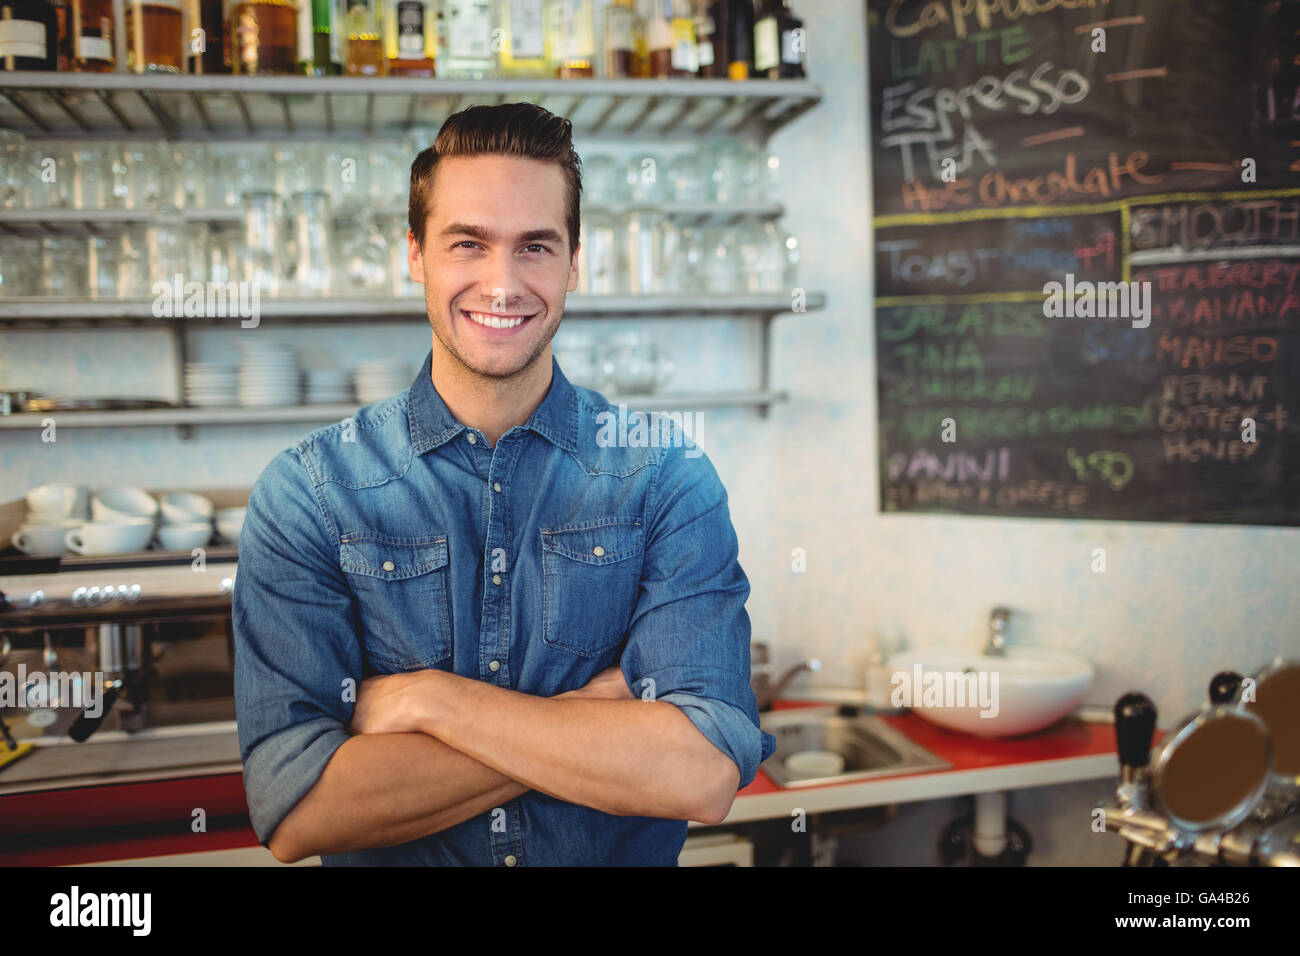 Portrait of handsome cafe owner Photo Stock